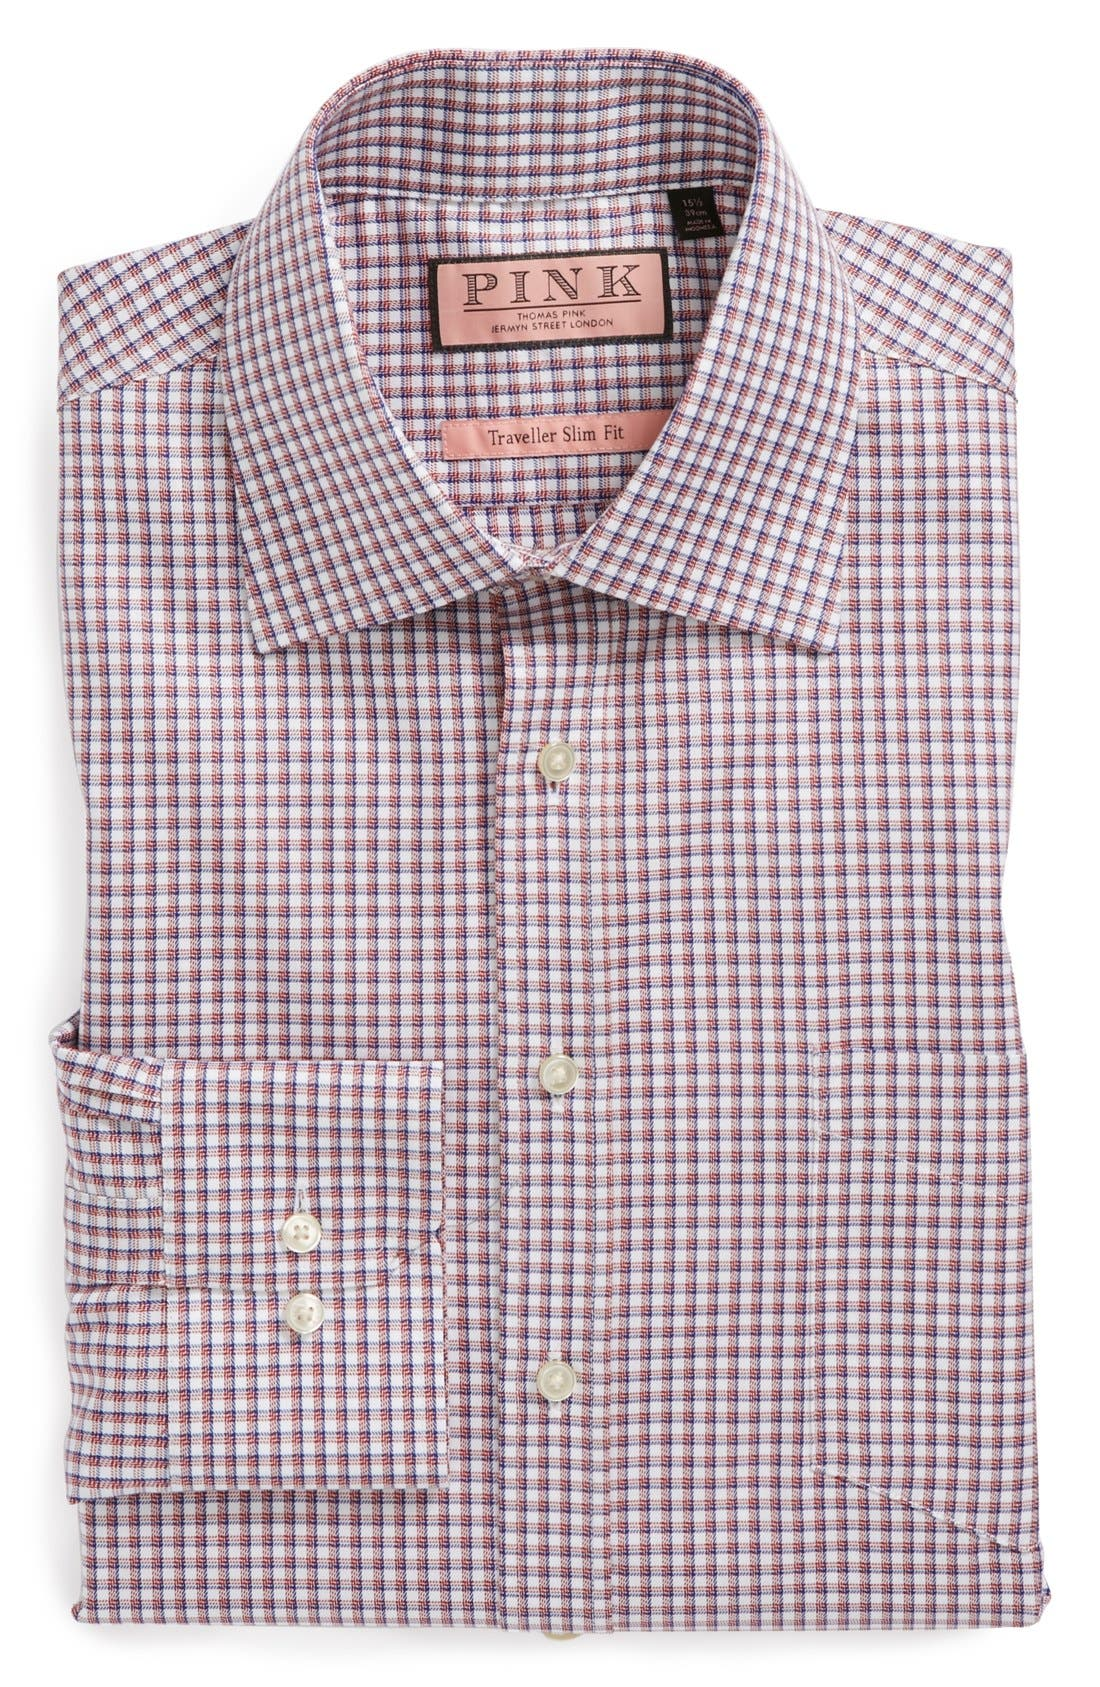 Main Image - Thomas Pink 'Cantwell' Slim Fit Traveler Check Non-Iron Dress Shirt